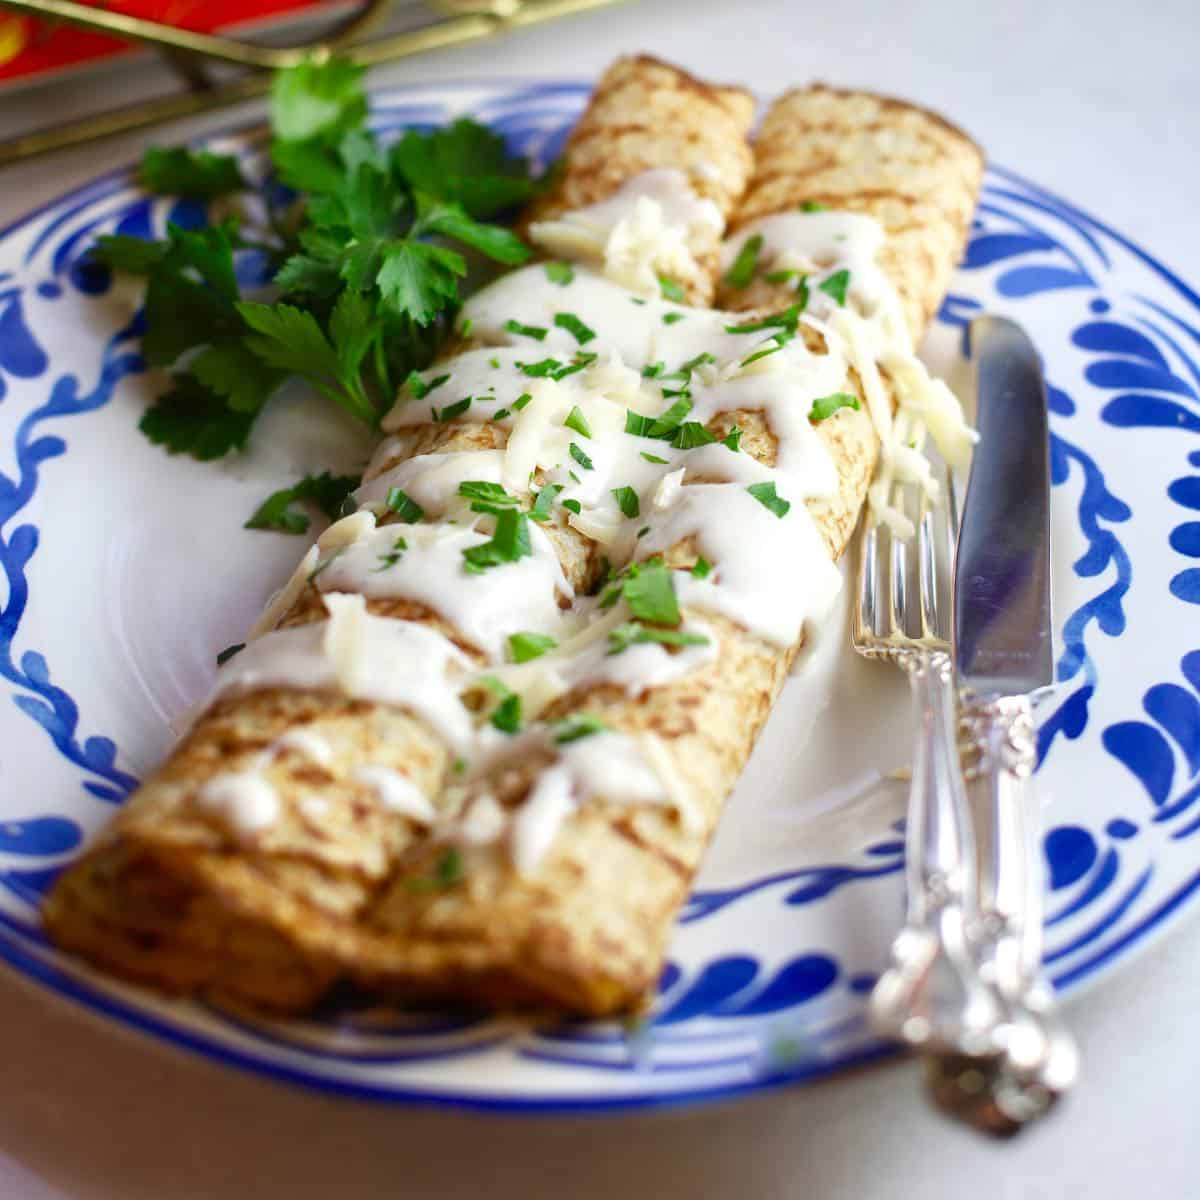 Two crepes on a blue and white plate with chicken and mushroom filling.